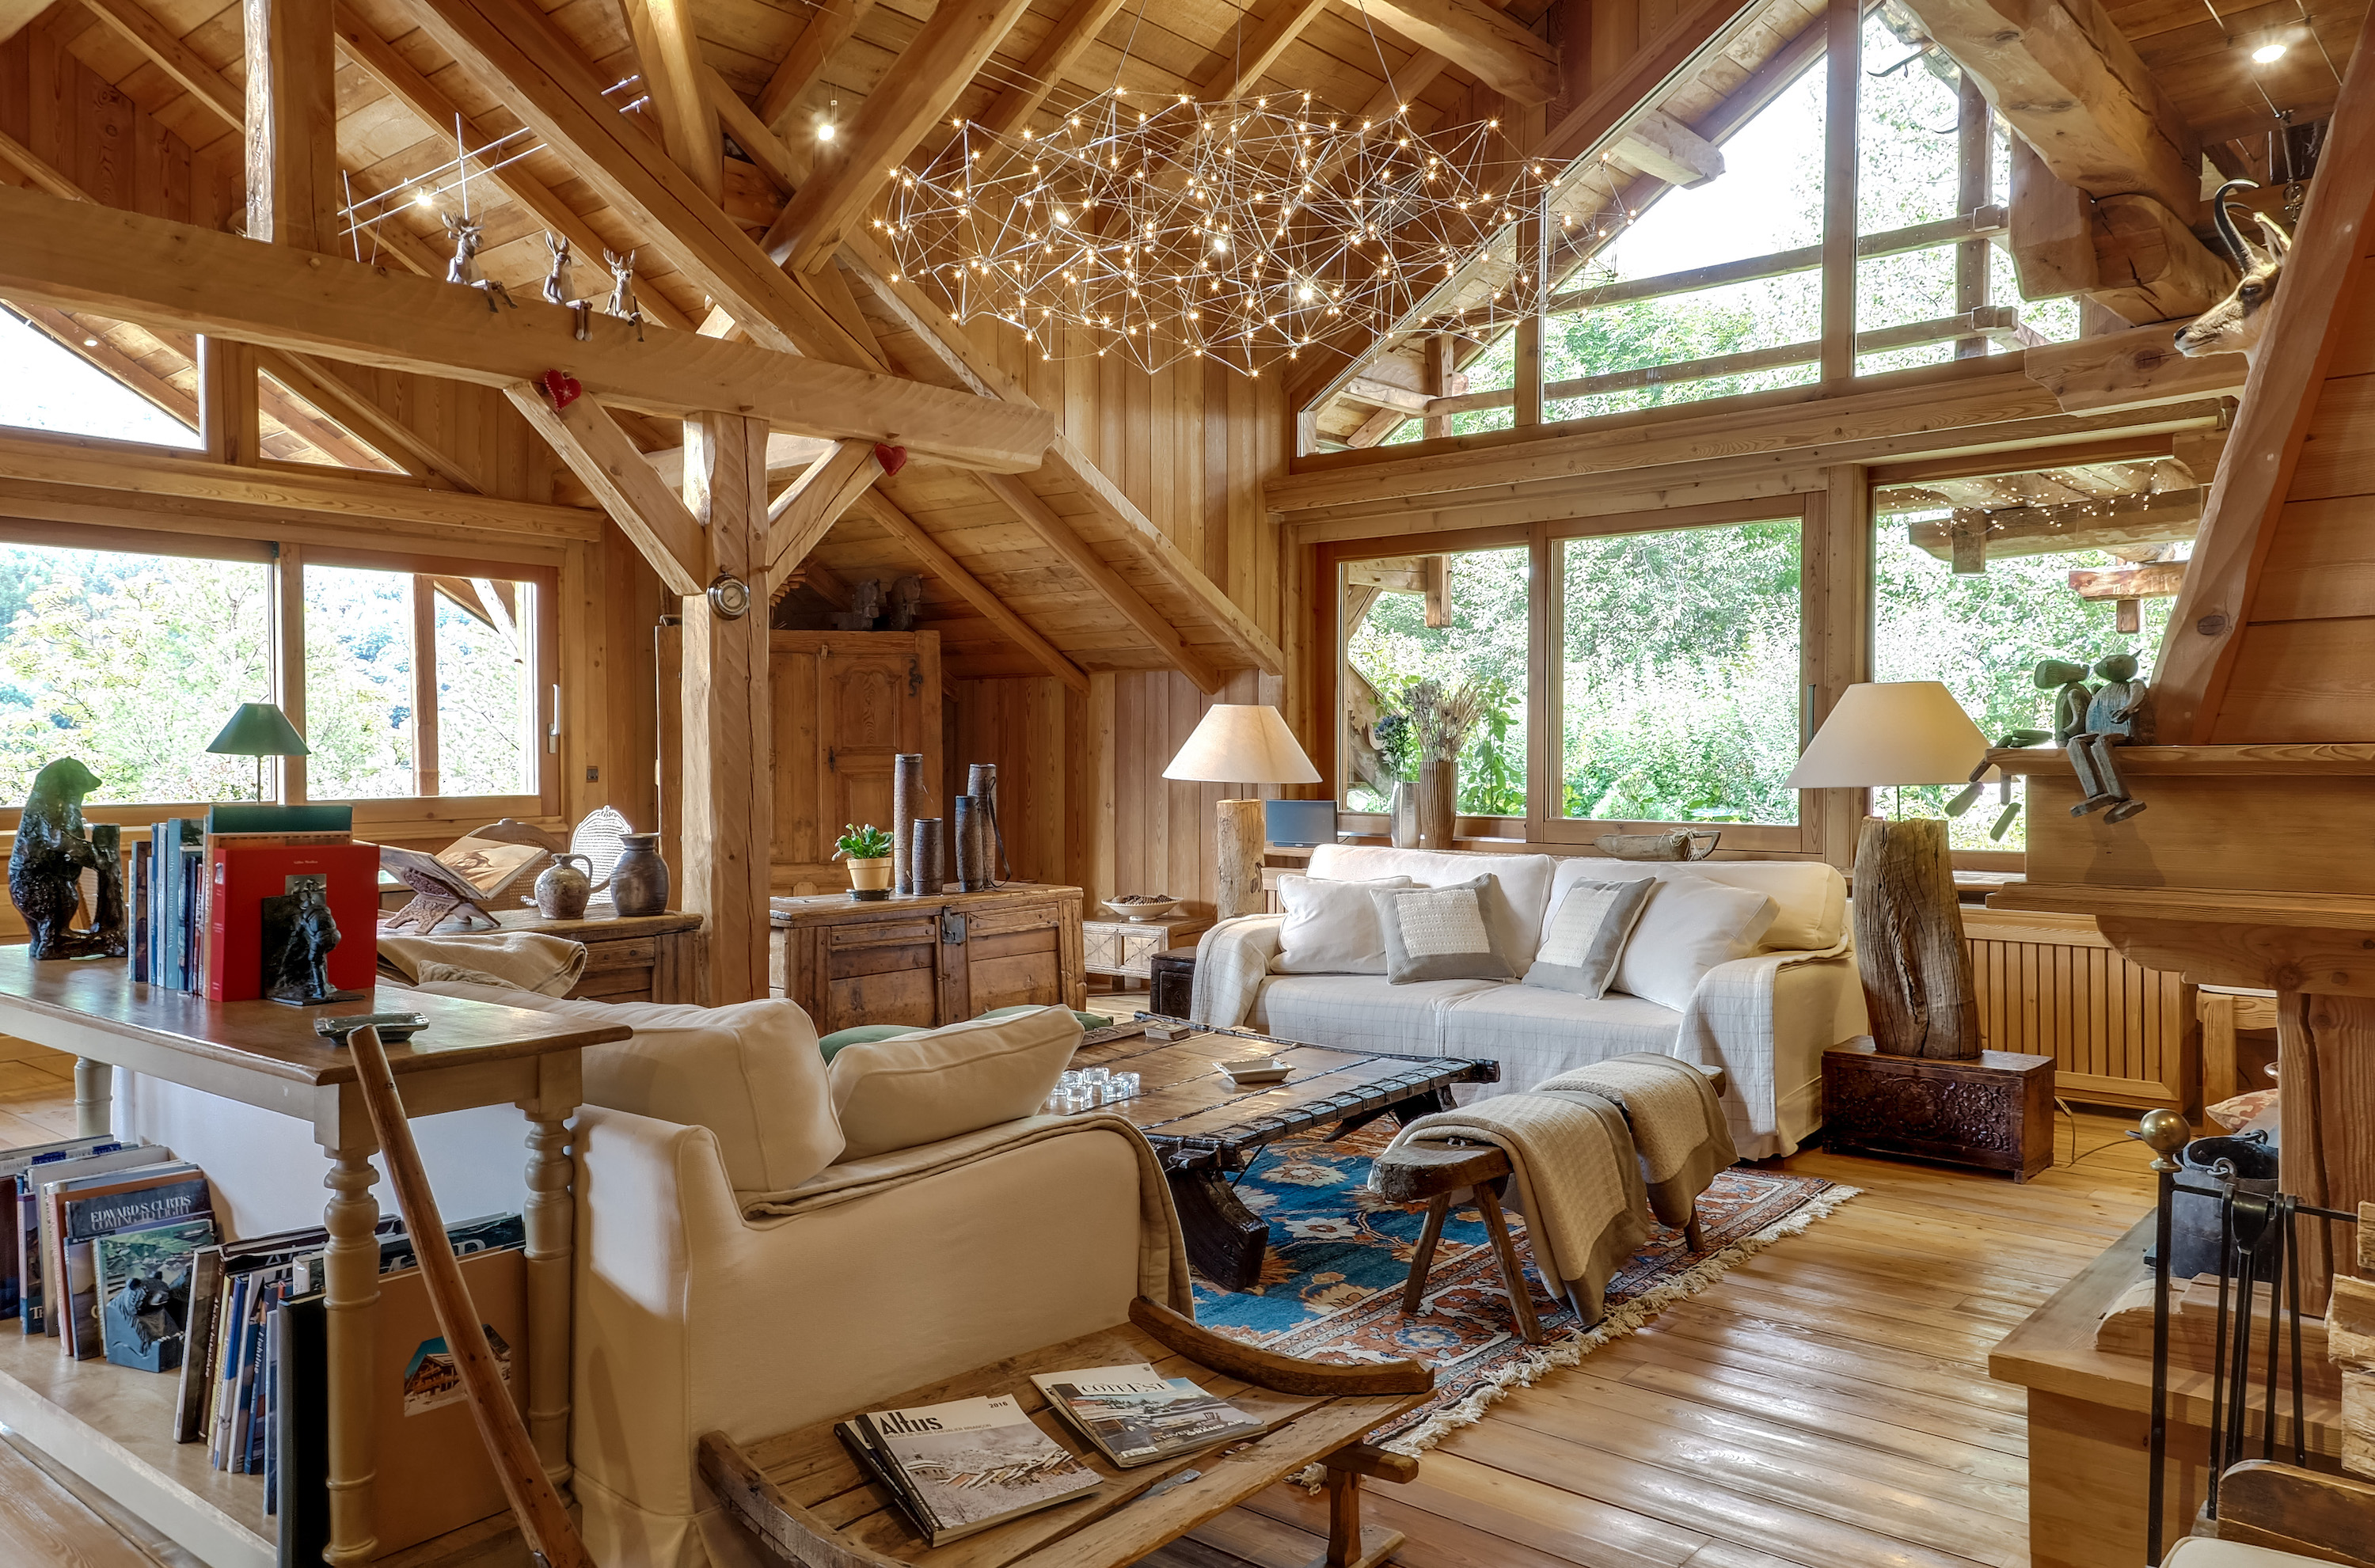 15/Chalet Grande Ourse/salon-chalet-luxe-serre-che.jpg